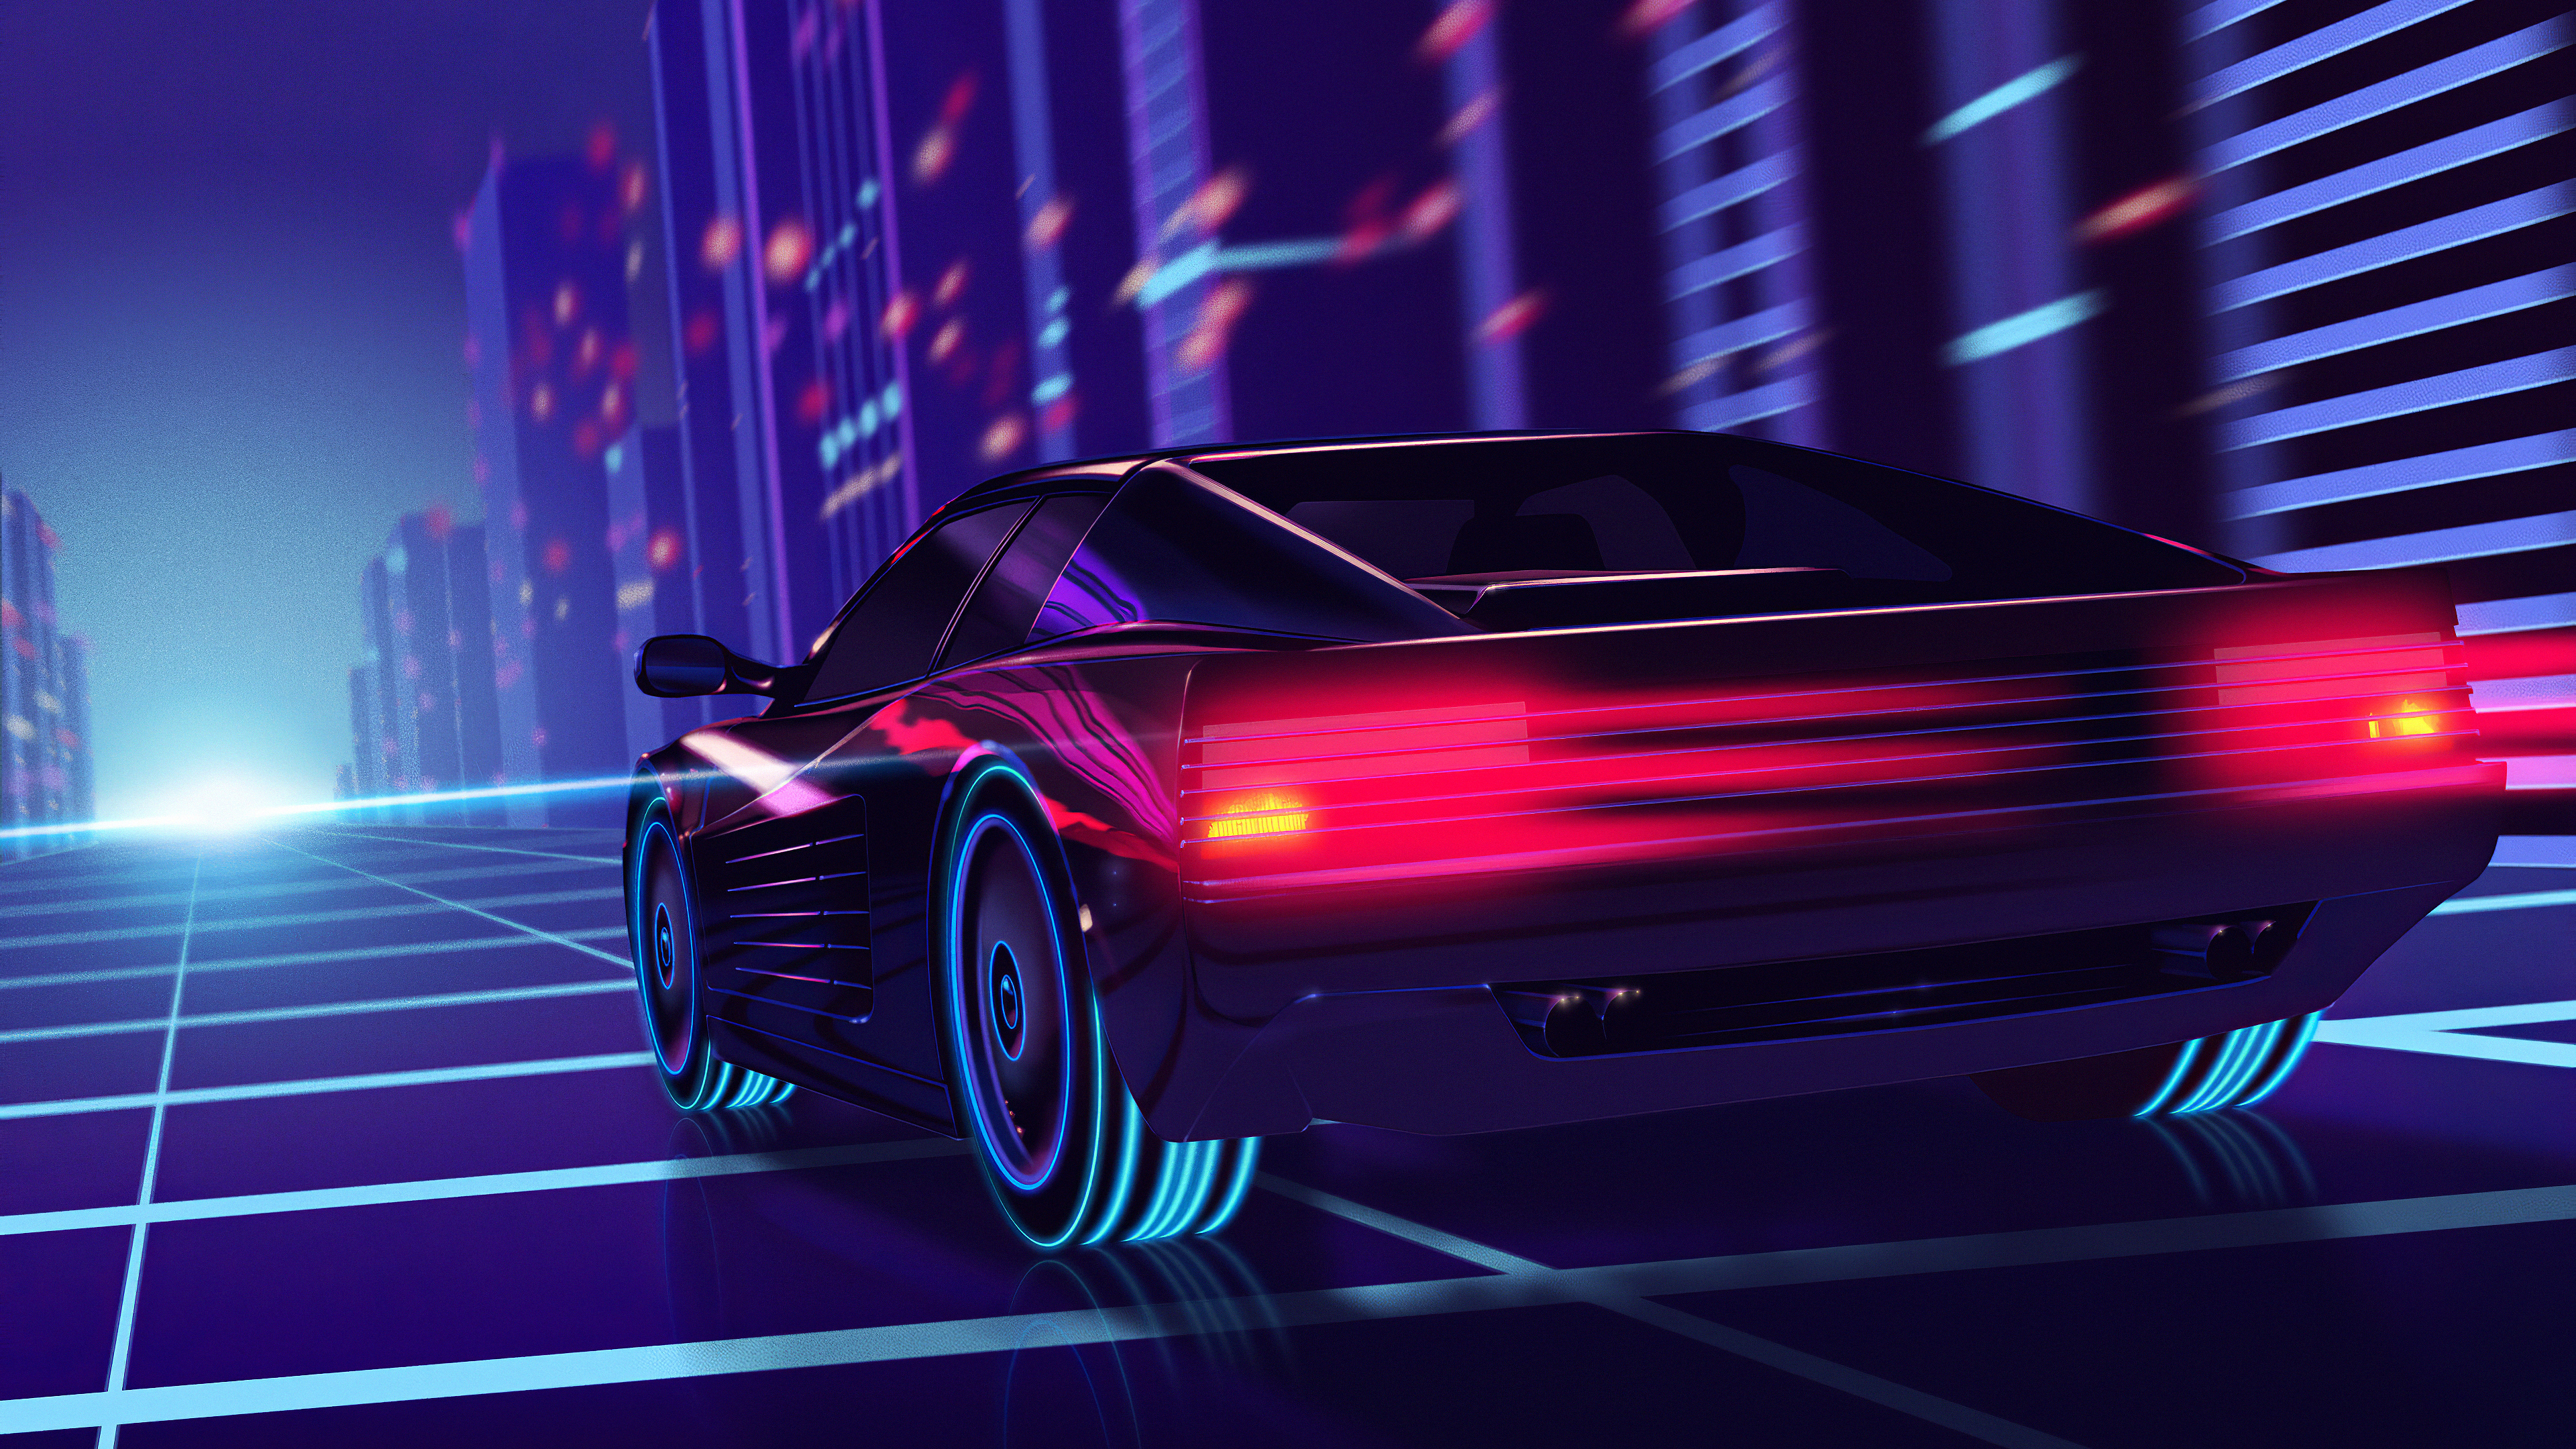 1920x1080 Cyber Car Neon City Laptop Full Hd 1080p Hd 4k Wallpapers Images Backgrounds Photos And Pictures